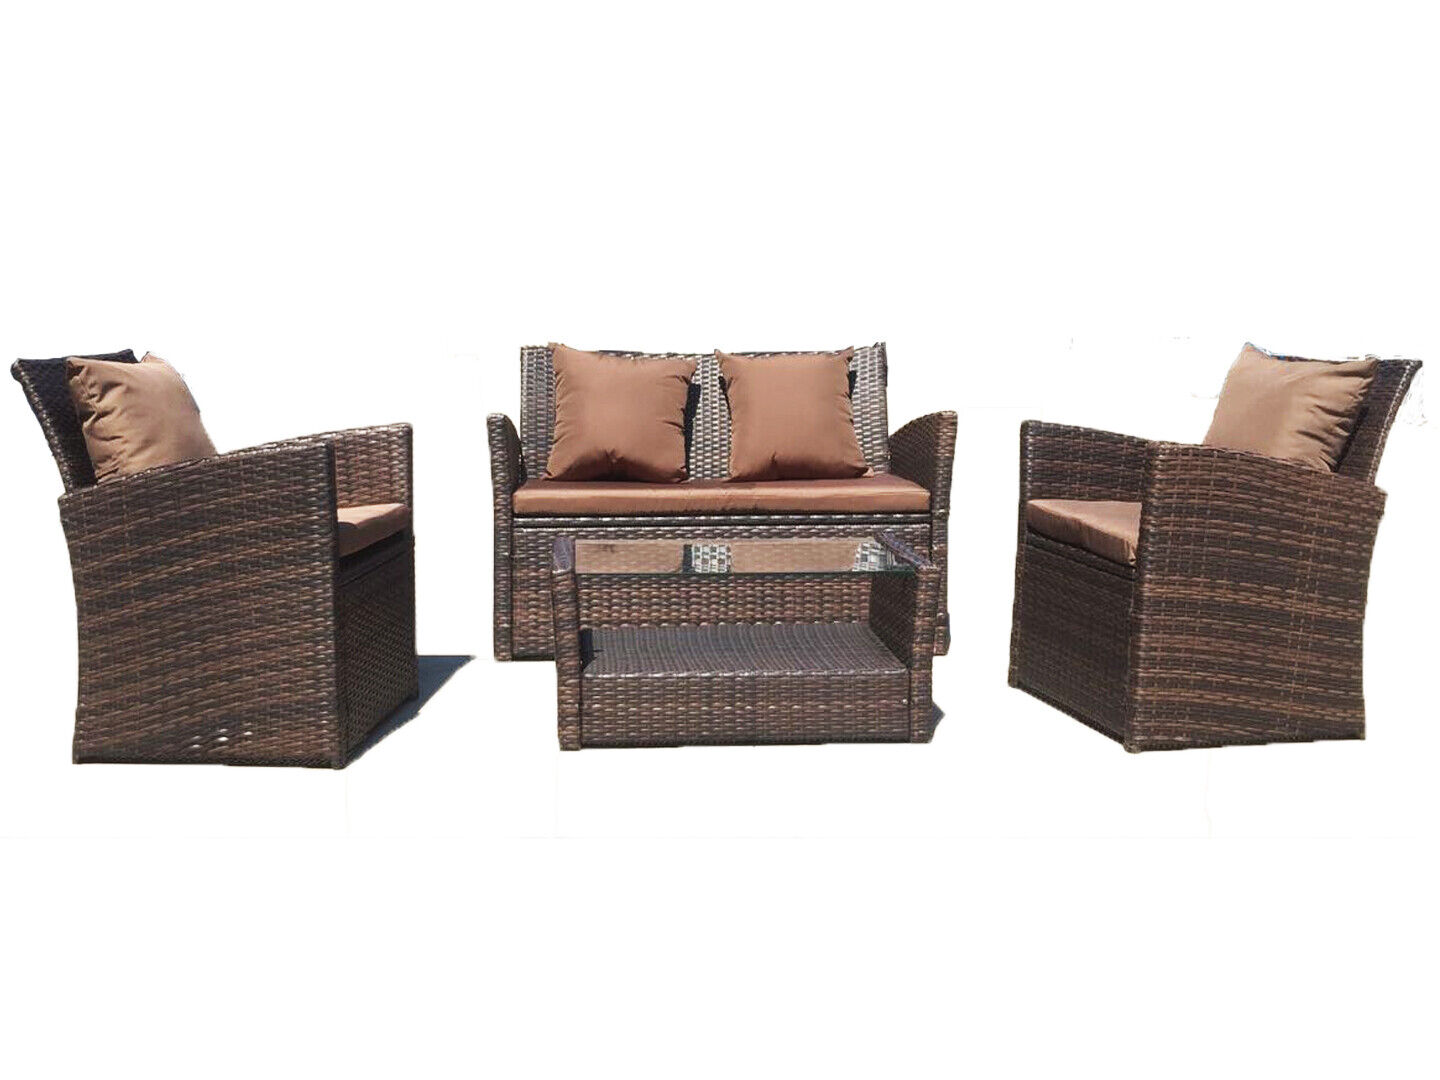 Garden Furniture - UFI 4pcs outdoor furniture Wicker Ratten Garden Sofa Cushioned and Table Brown